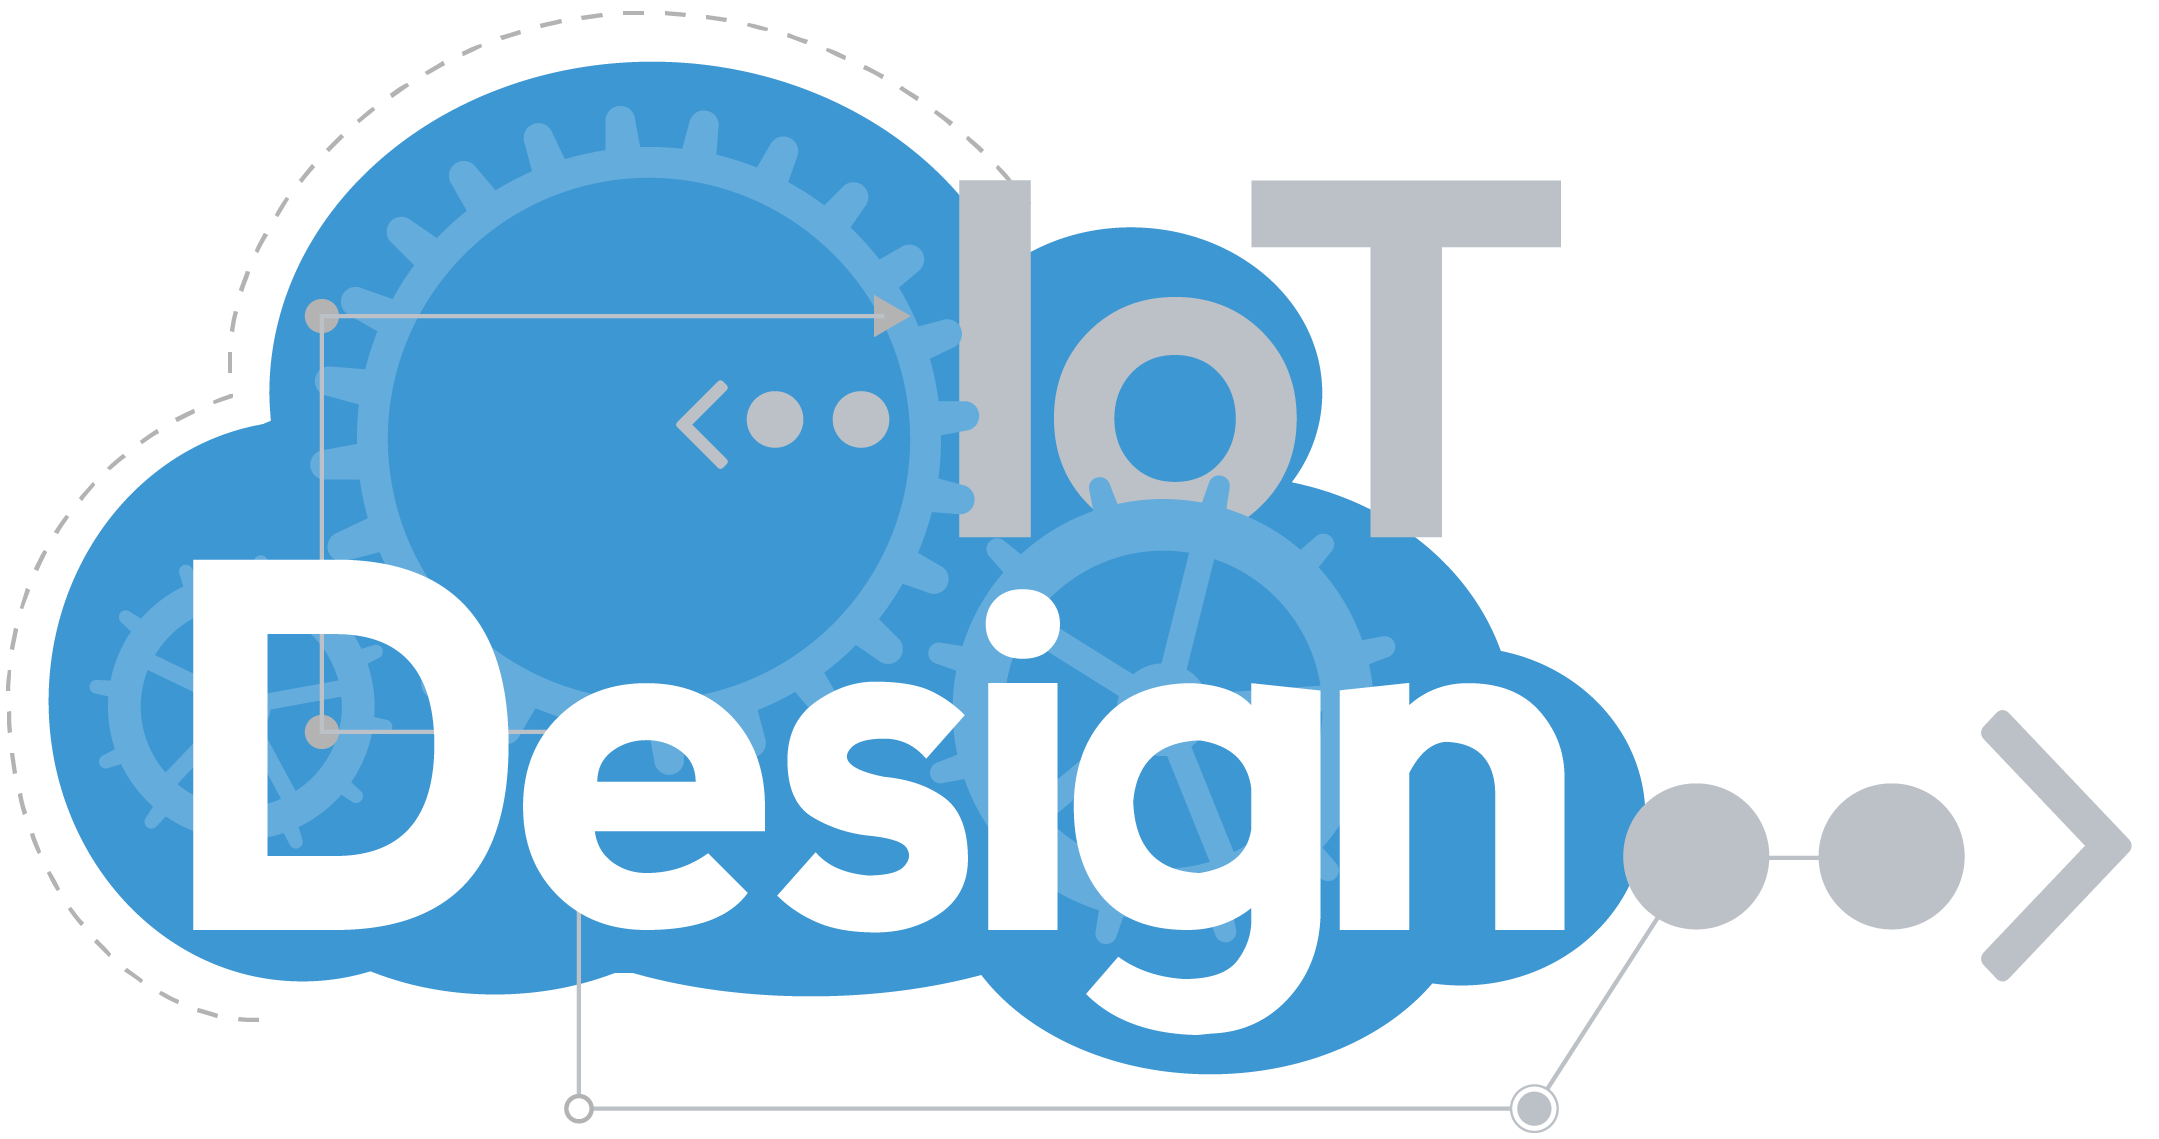 IoT sets new design rules for firms